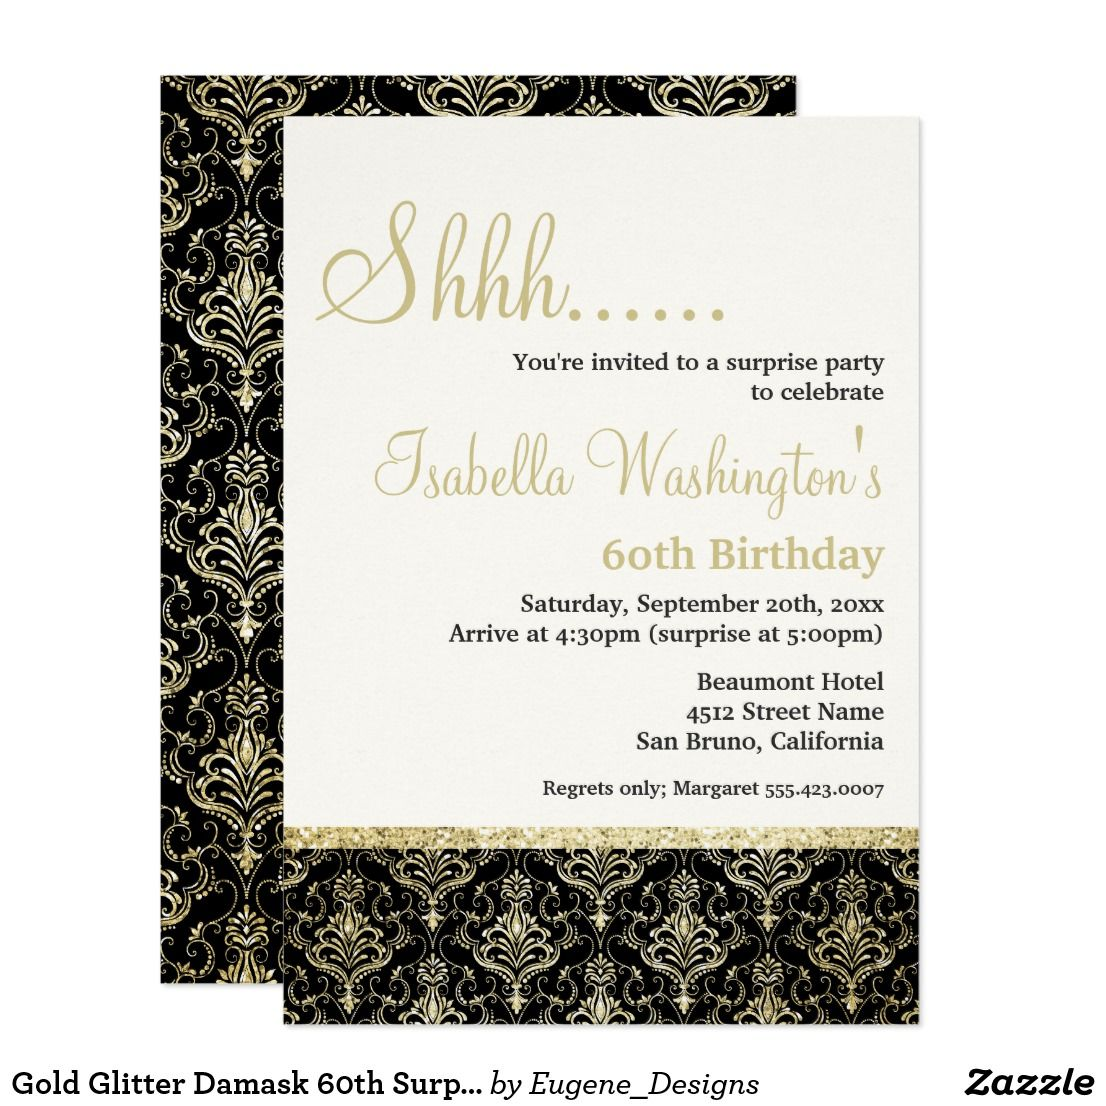 Gold Glitter Damask 60th Surprise Birthday Party Card | Surprise ...